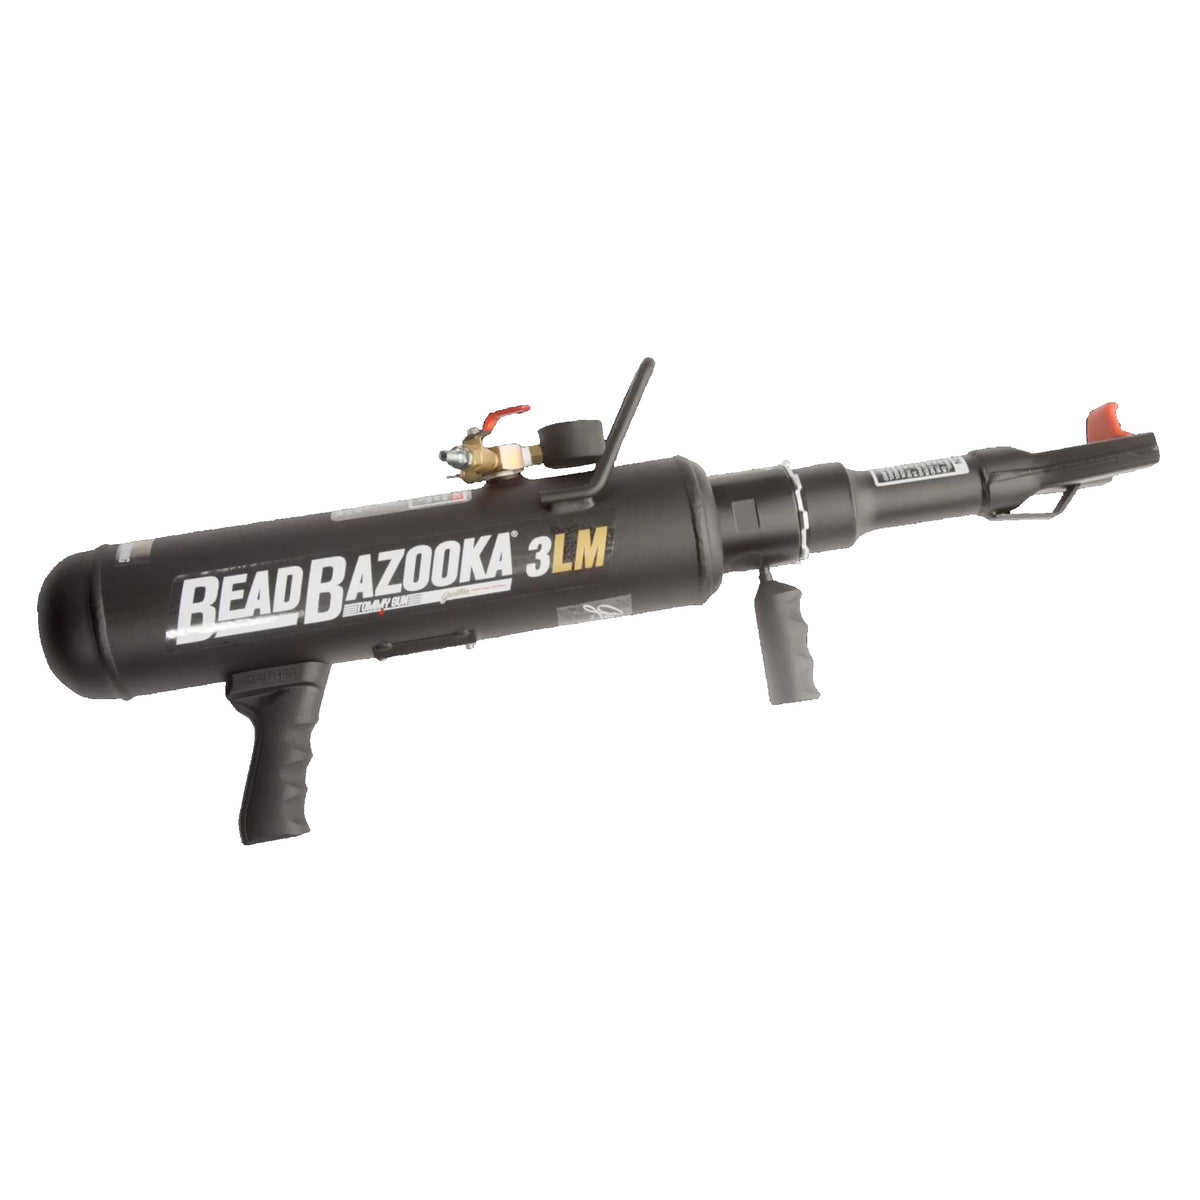 Gaither BB3LM Tommy Gun 3 Liter Bead Bazooka